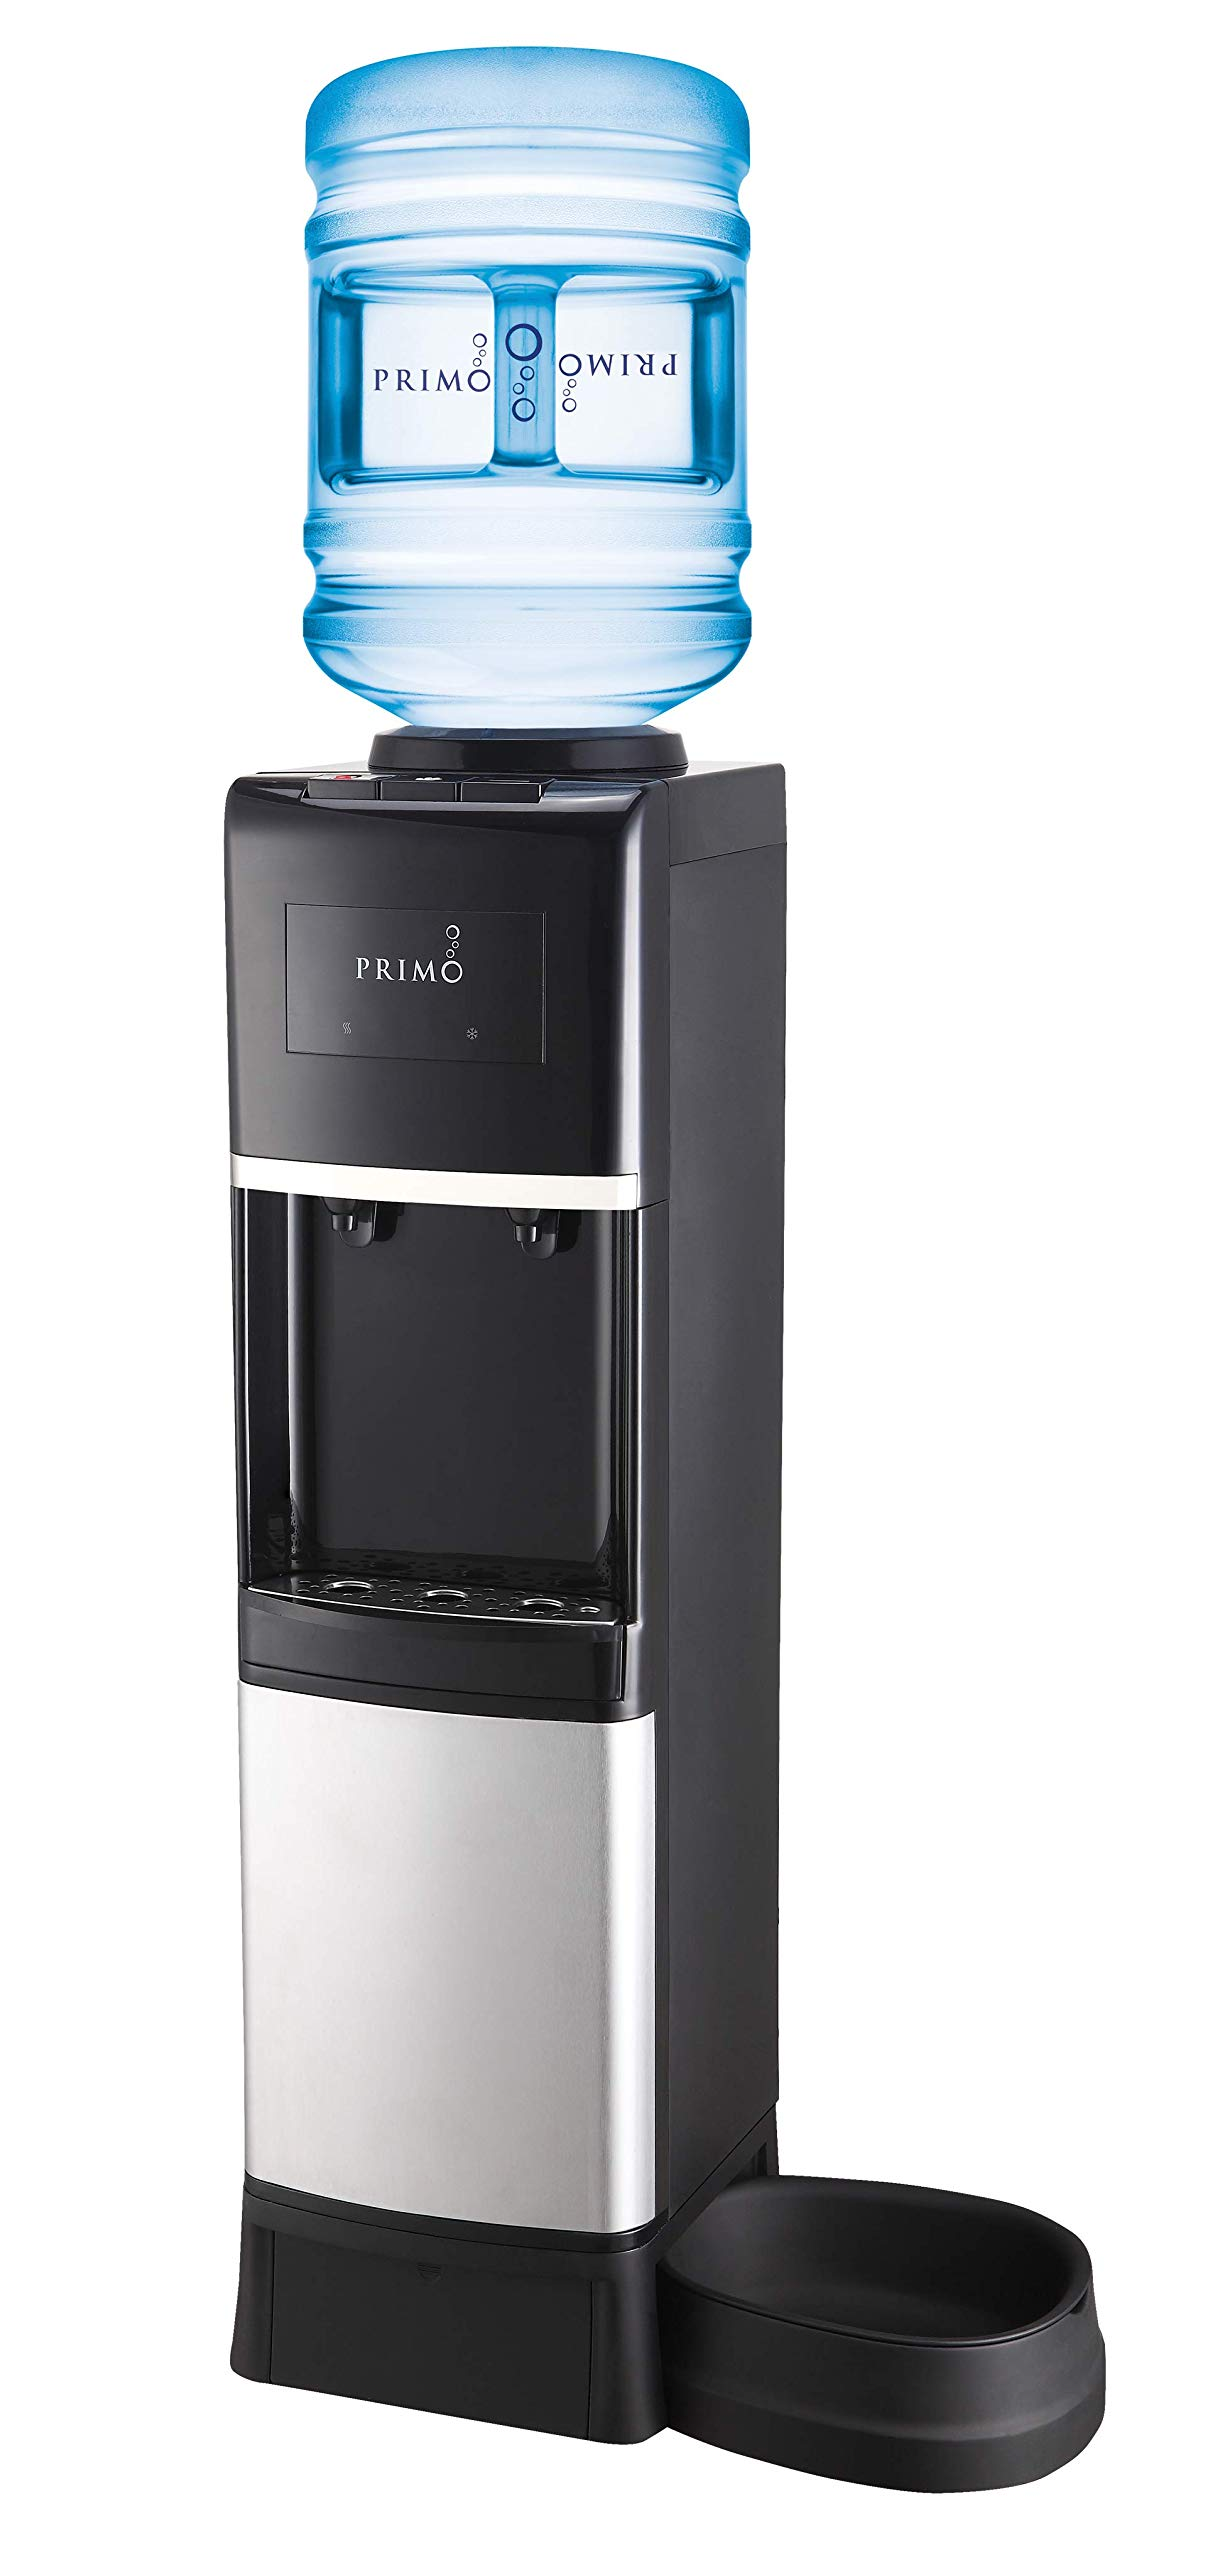 Primo Deluxe Top Loading Hot/Cold Water Dispenser with Pet Station by Primo Water